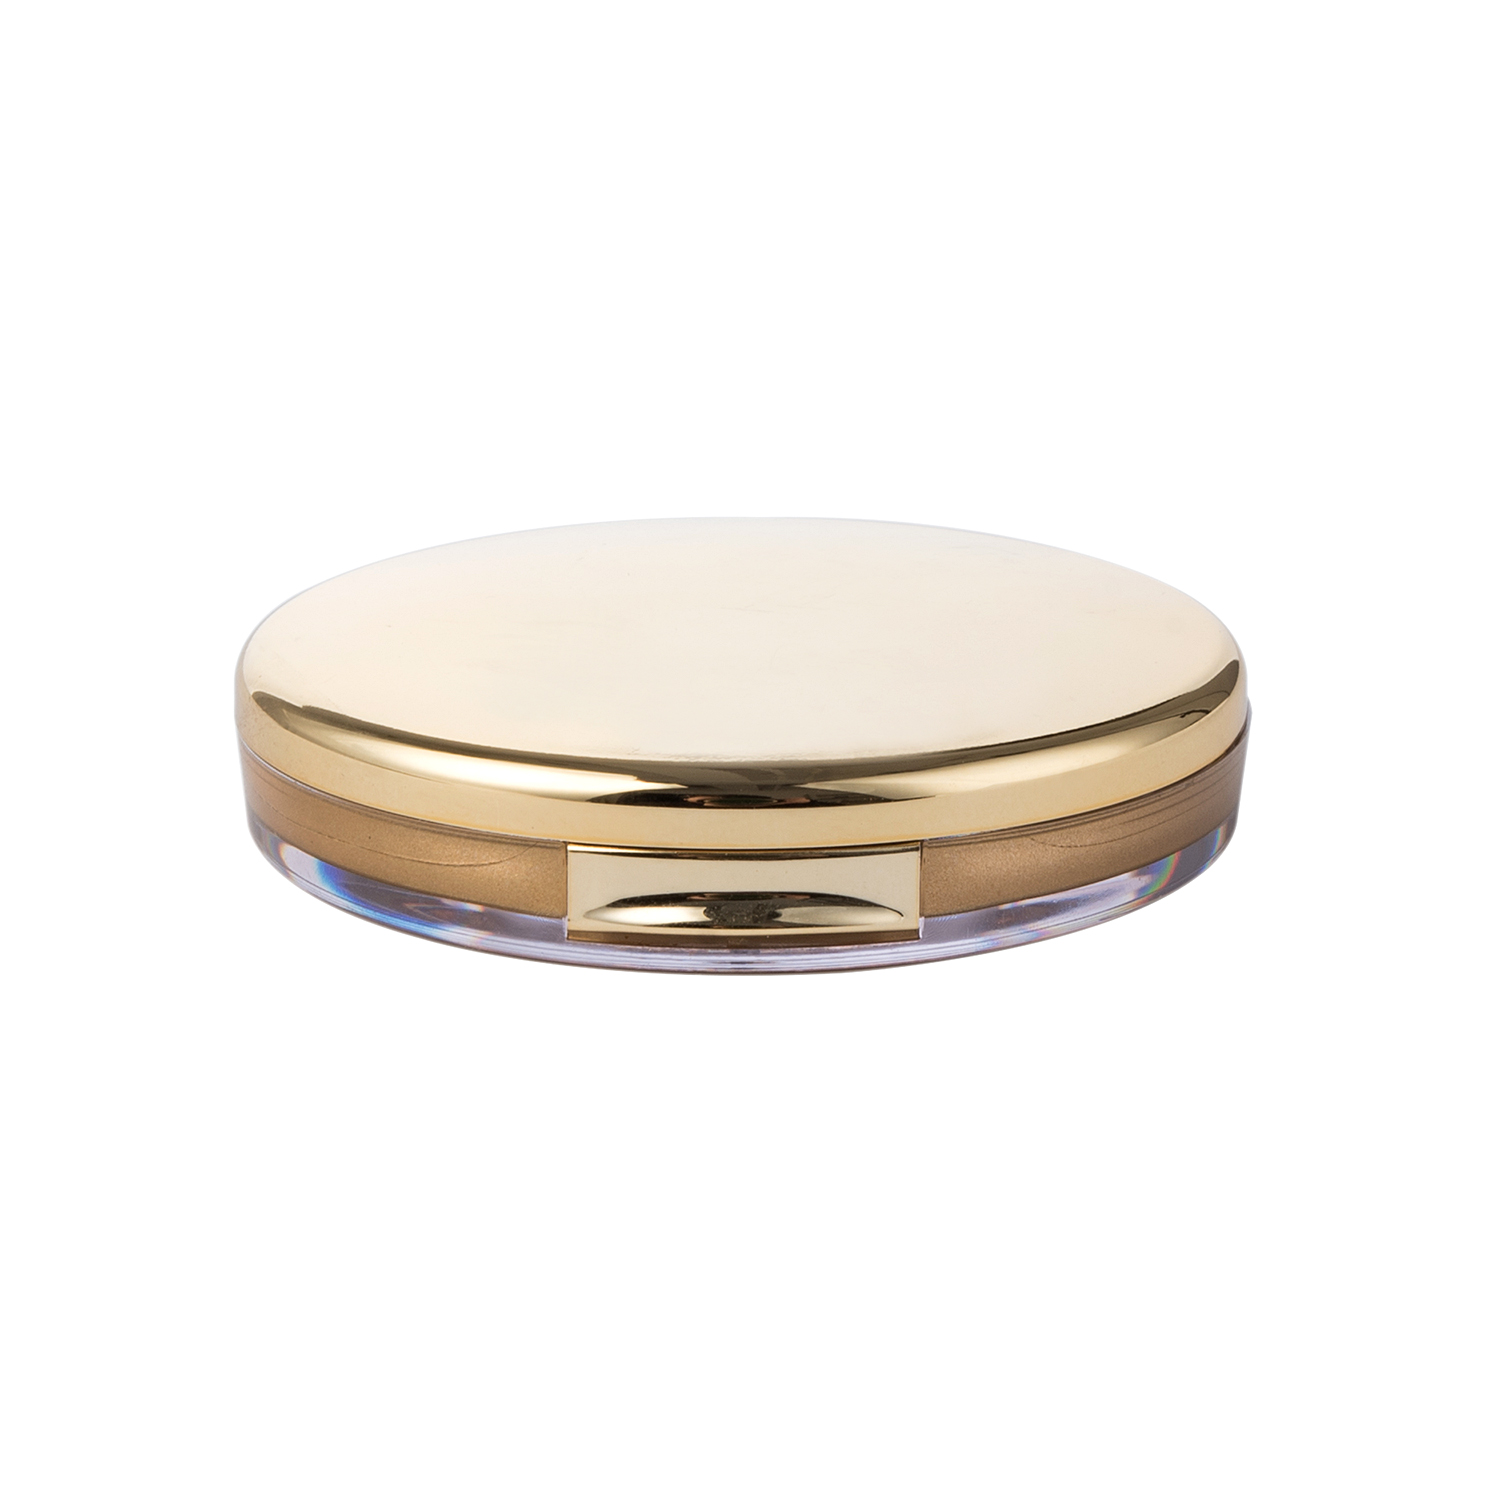 Luxury Double Wall Compact Powder Case plastic compact case